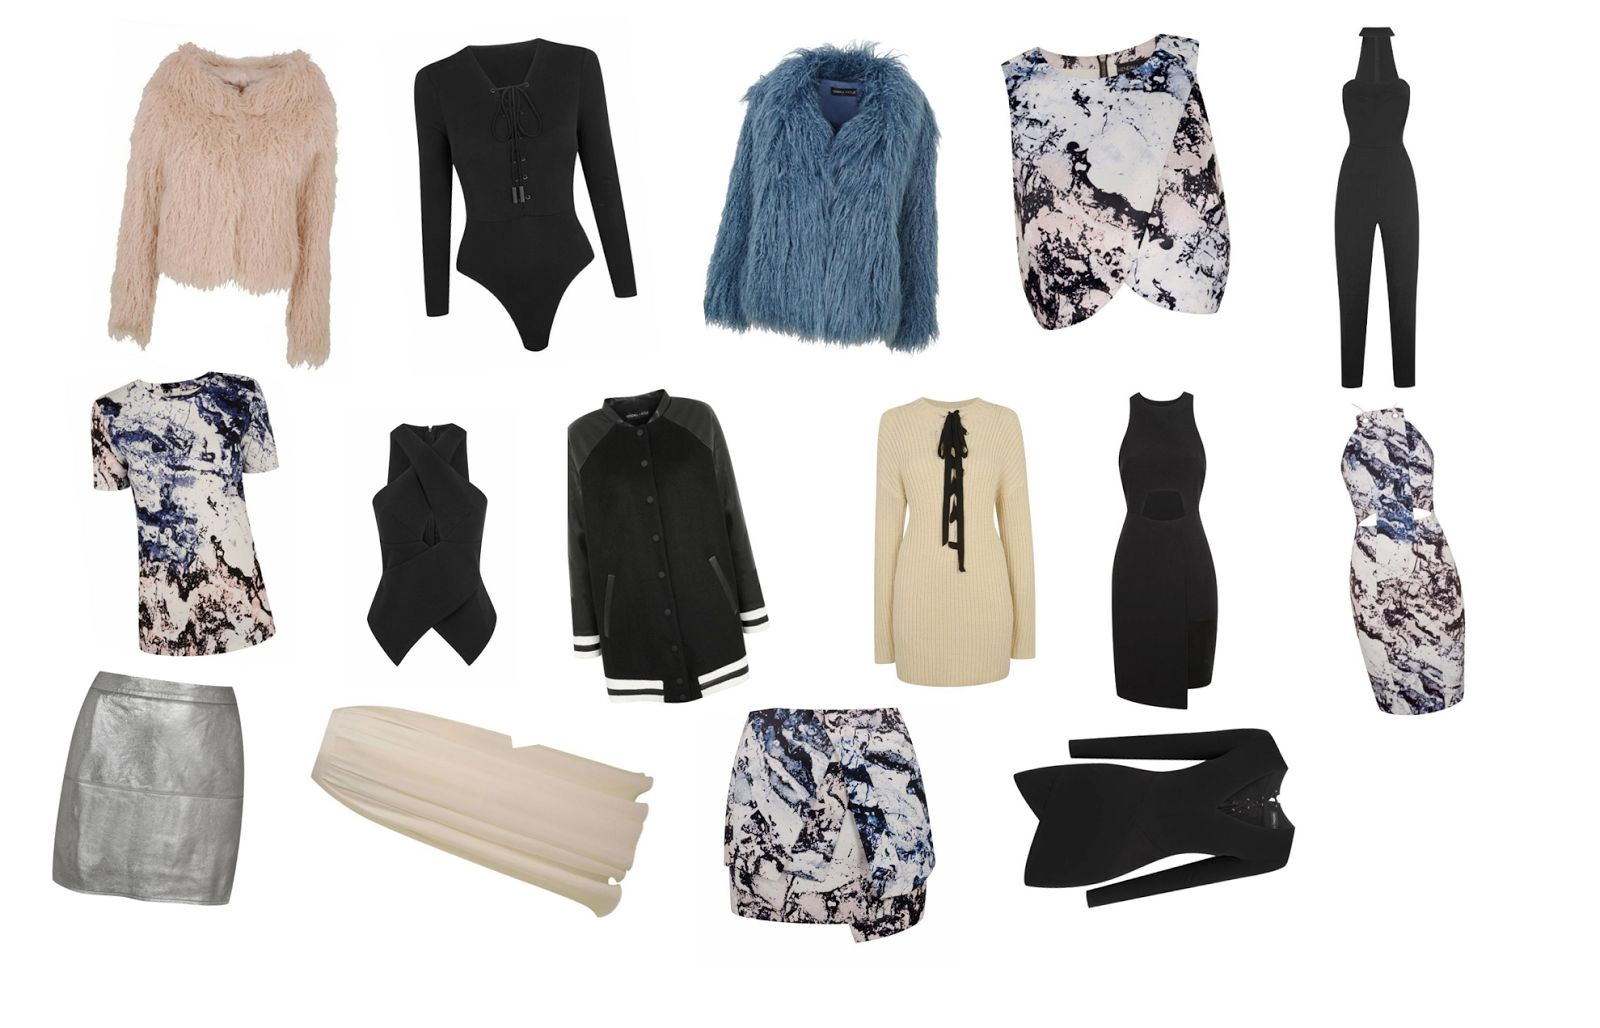 kendall and kylie topshop holiday collection